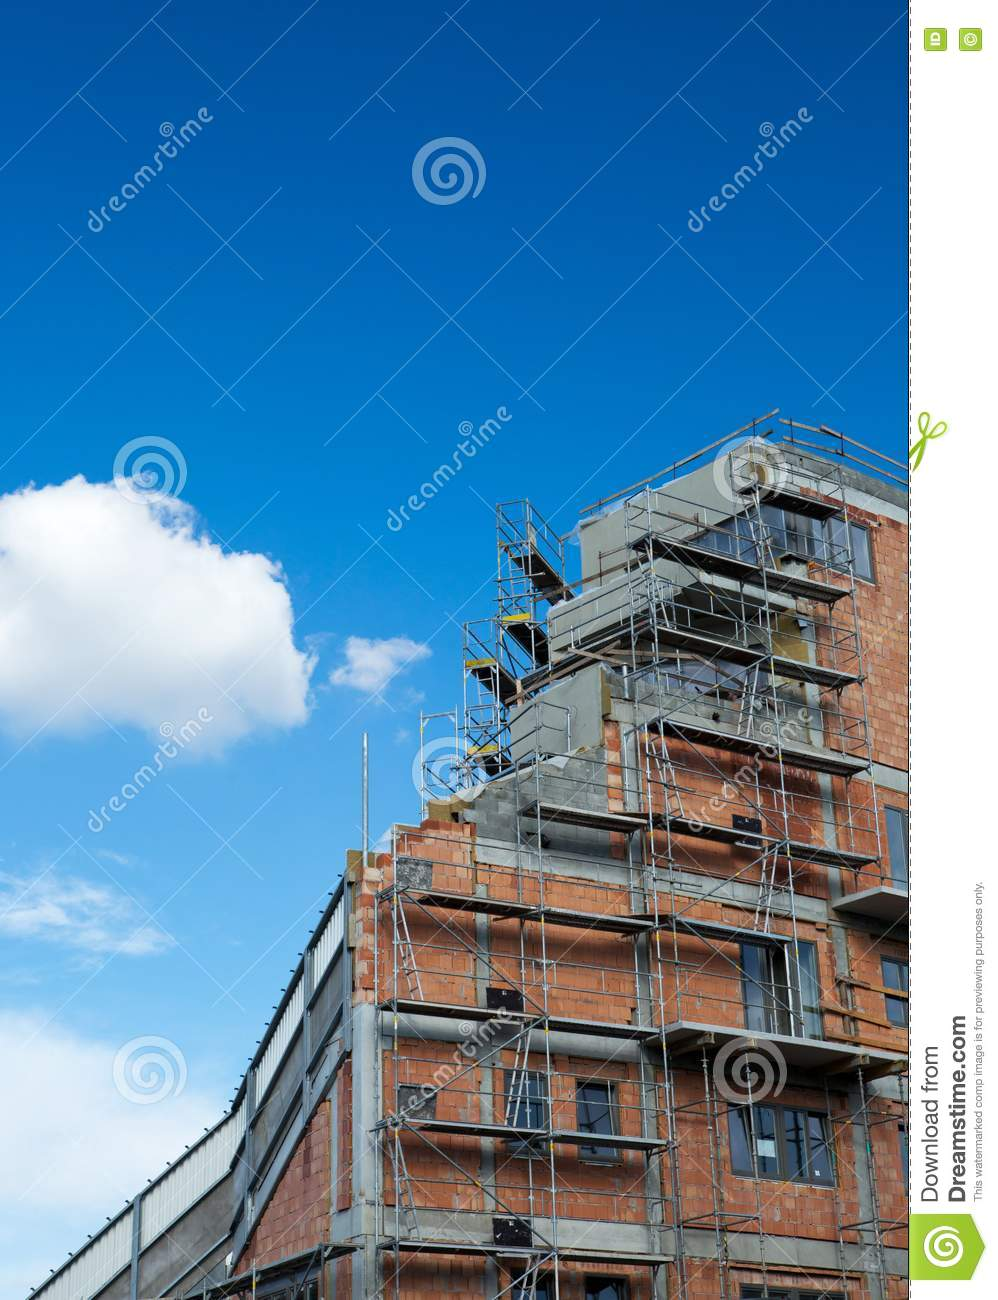 Residential Building Construction Site Royalty Free Stock ...